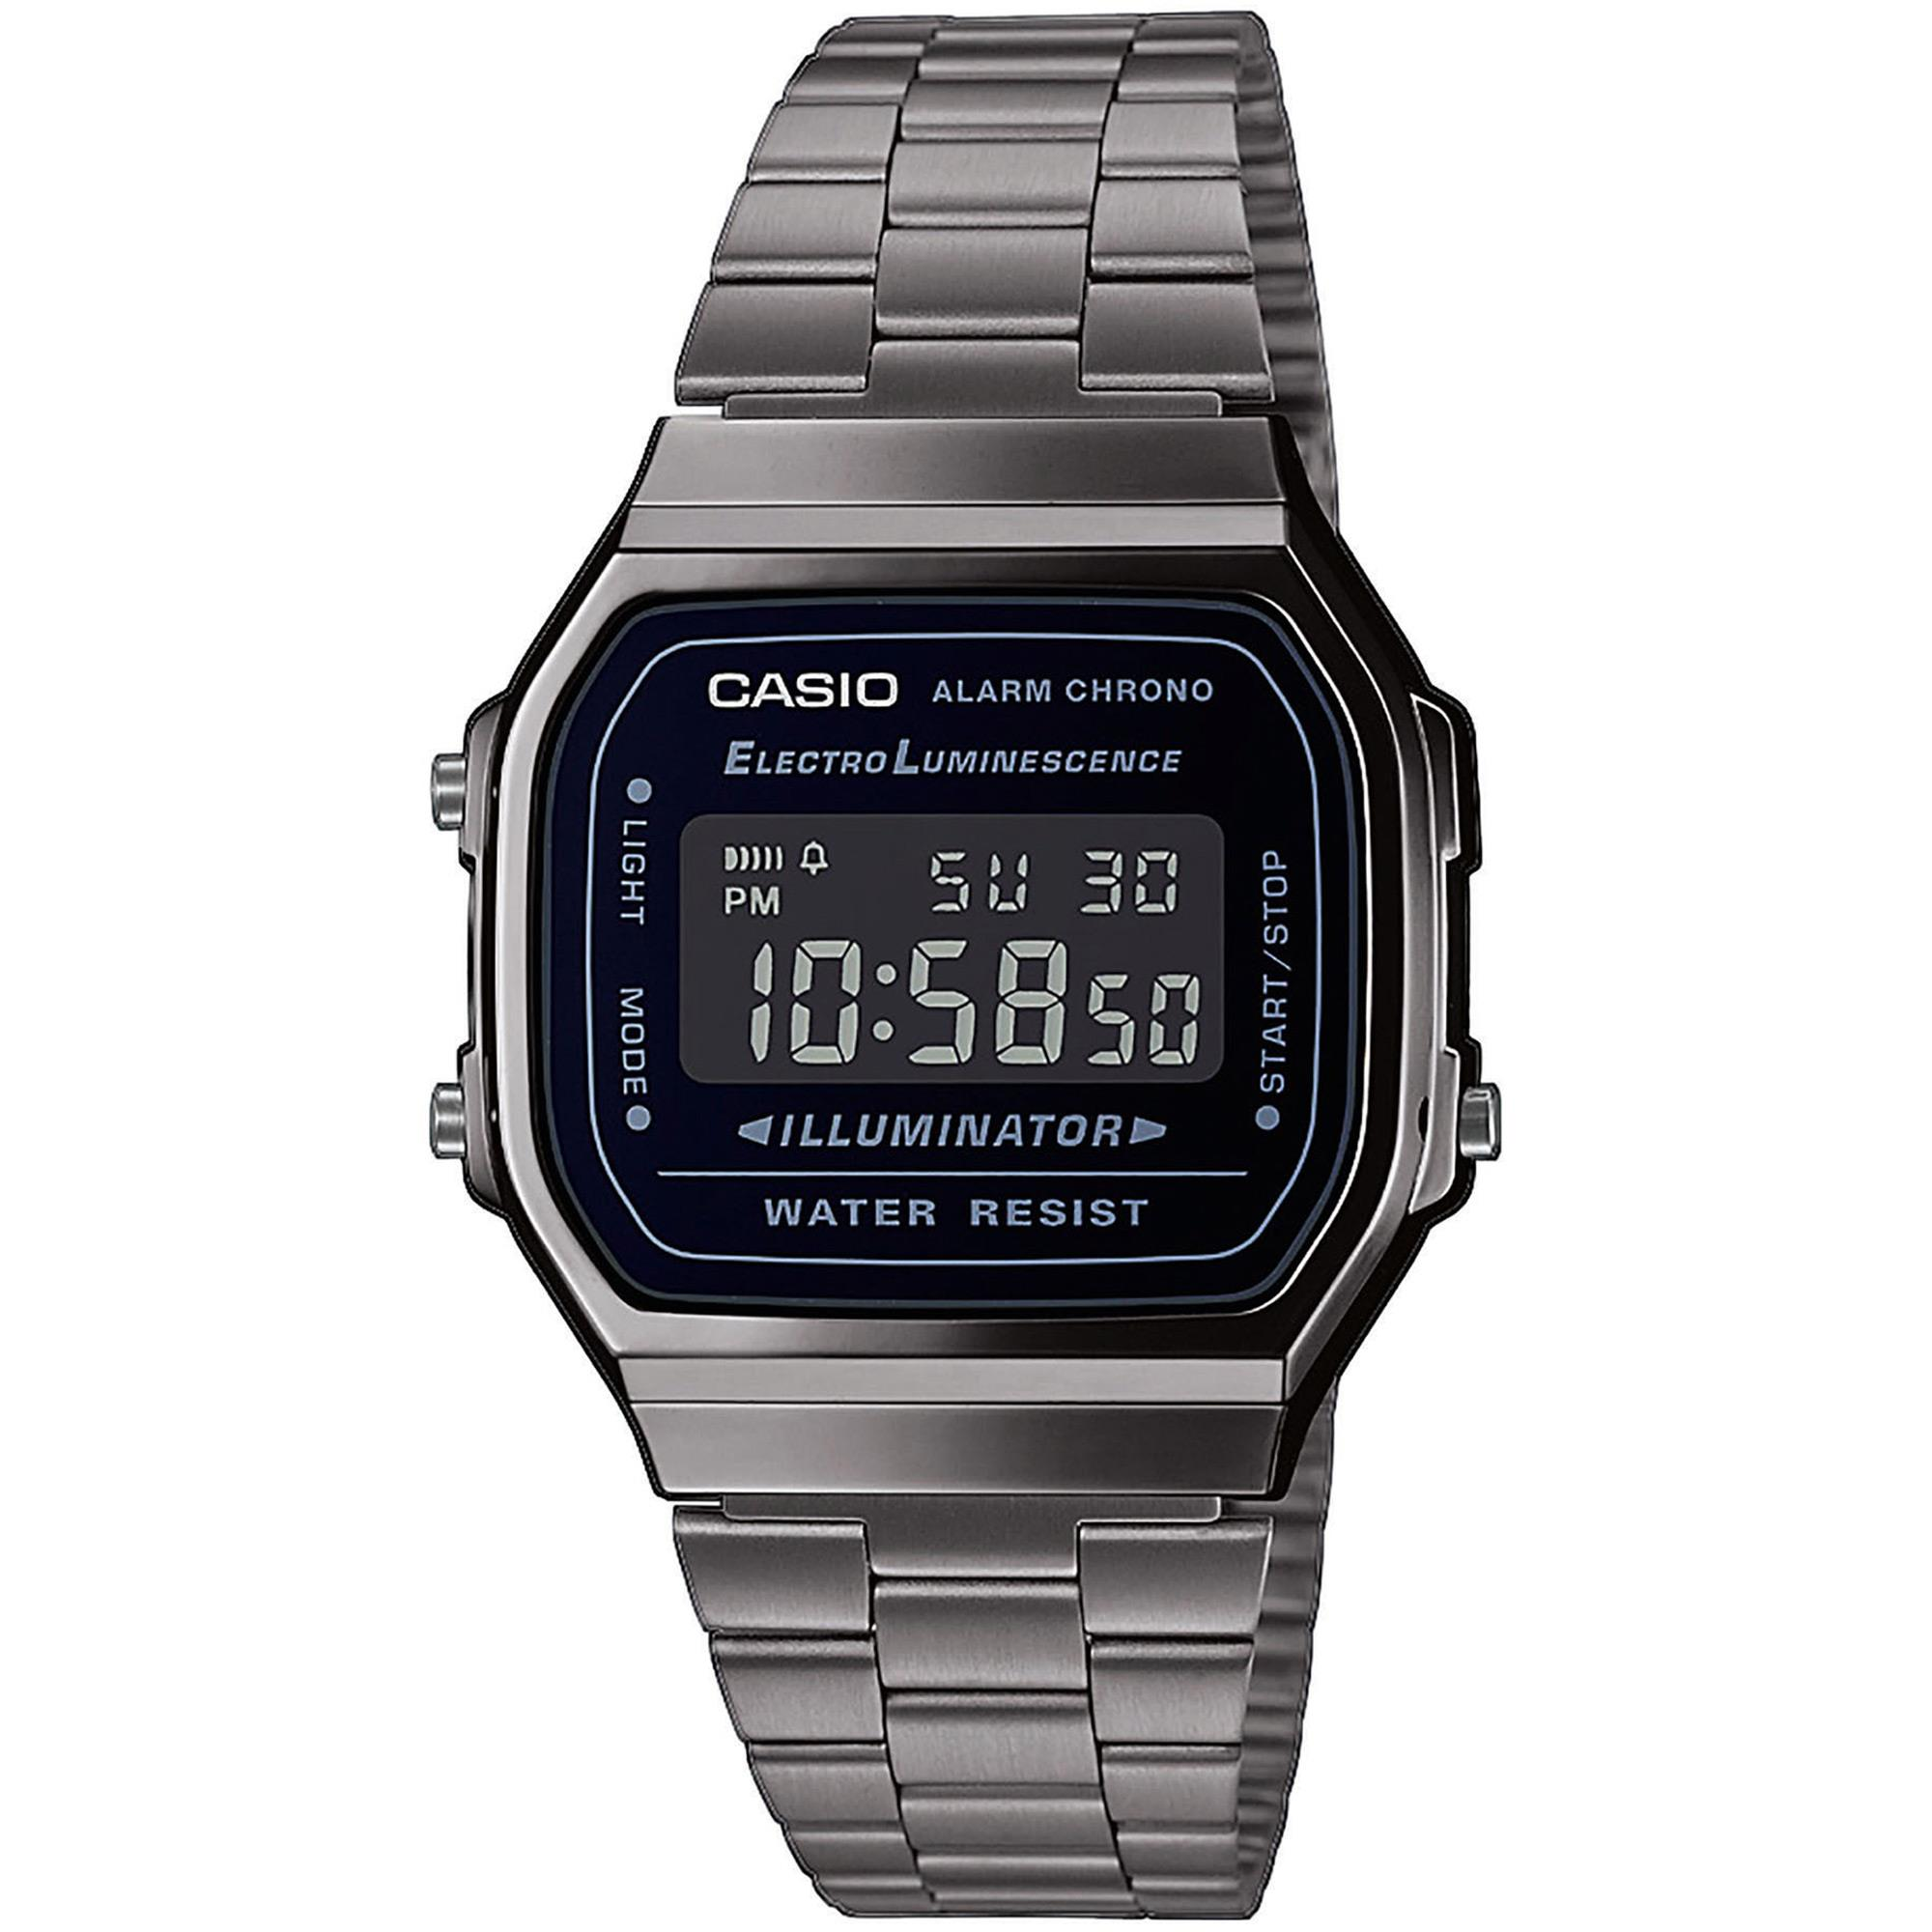 Orologio Digitale Vintage Iconic - CASIO